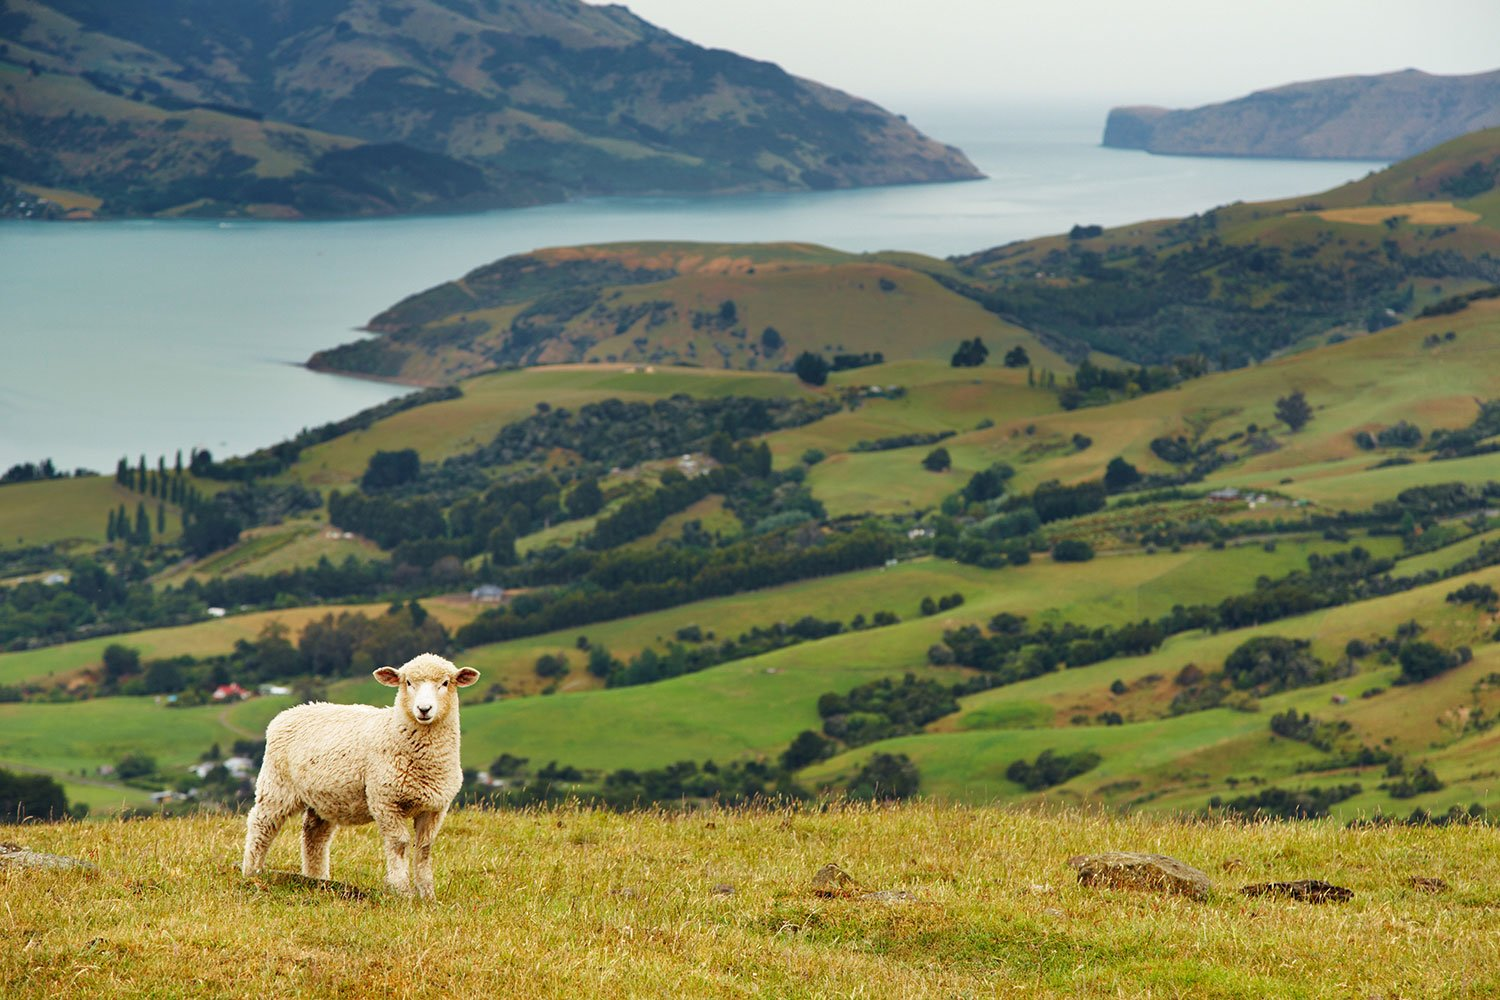 A fluffy white sheep on a grassy hill overlooking a green valley and large body of water in New Zealand